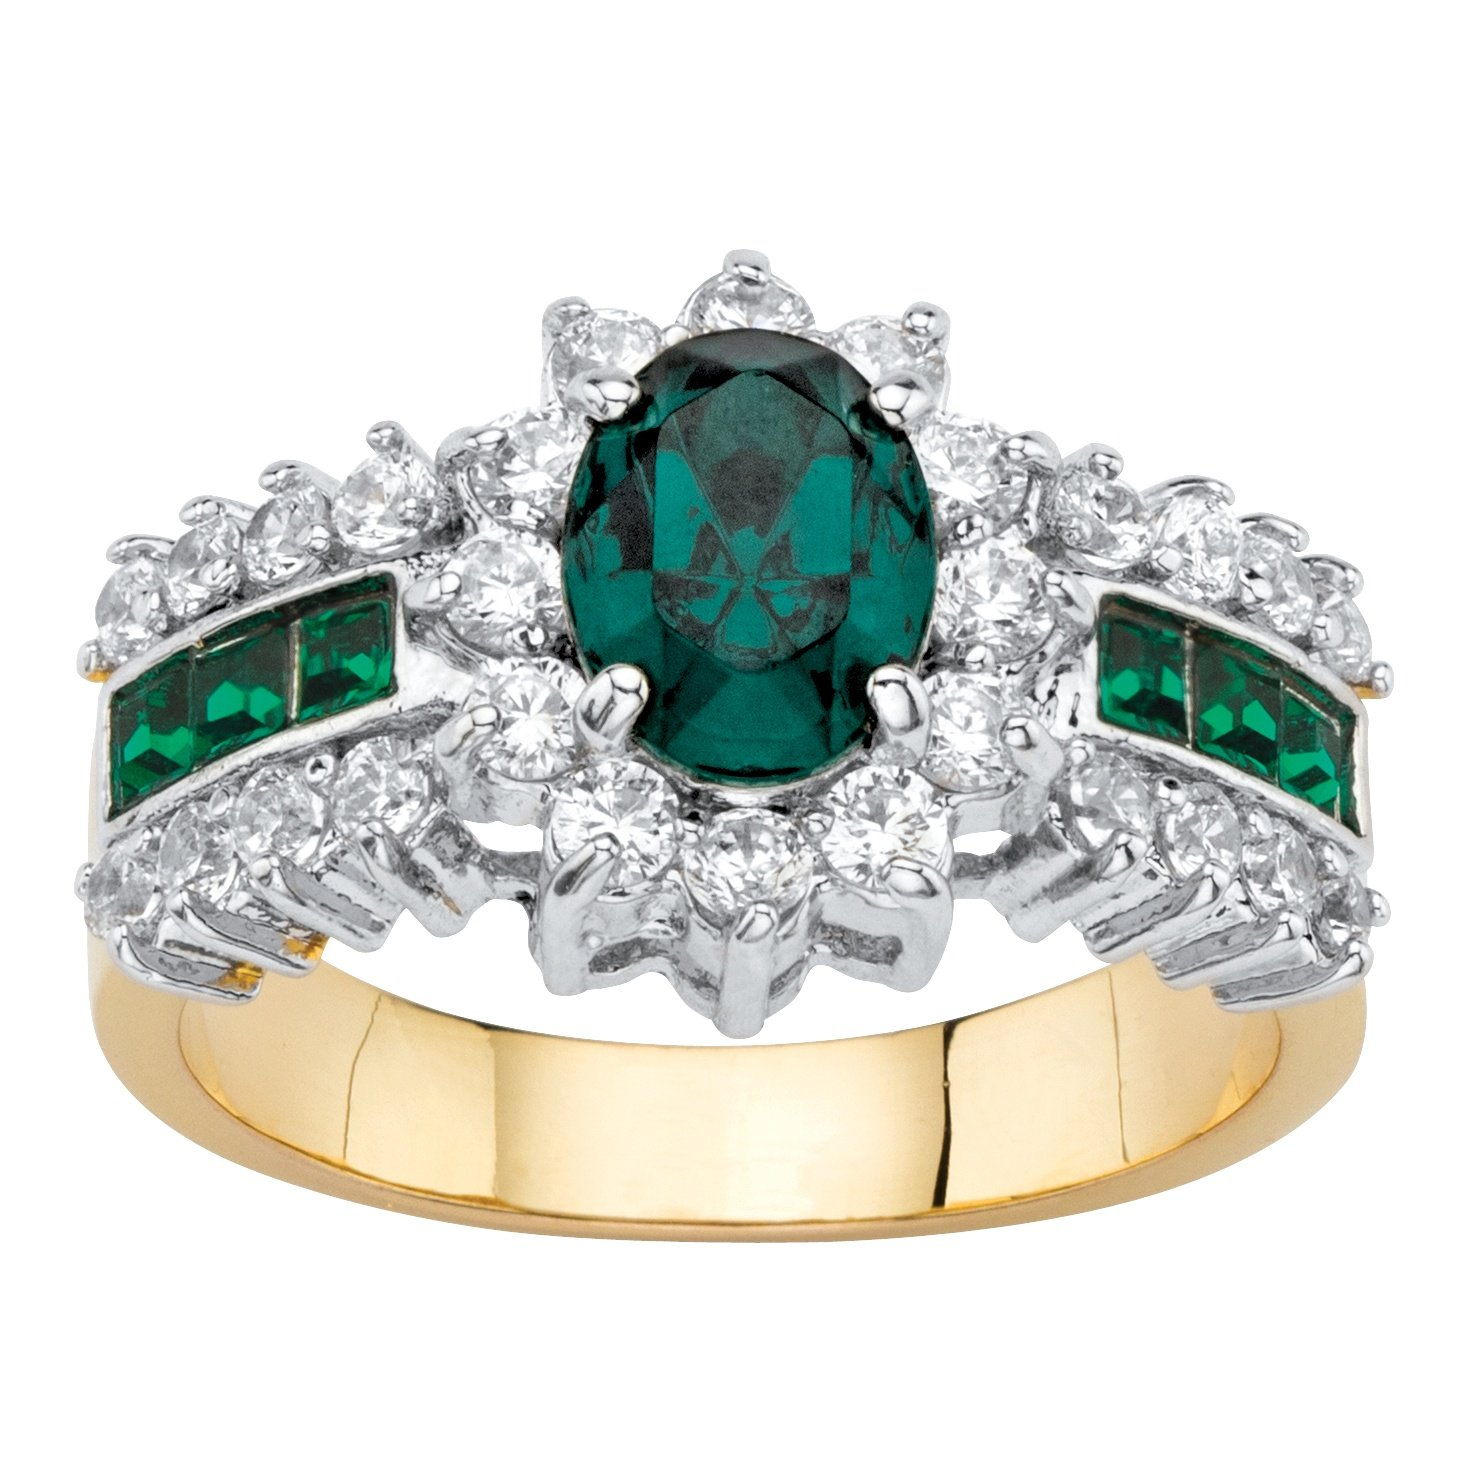 Palm Beach Jewelry Oval-Cut Green Simulated Crystal and CZ 14k Gold-Plated Halo Cocktail Ring Size 8